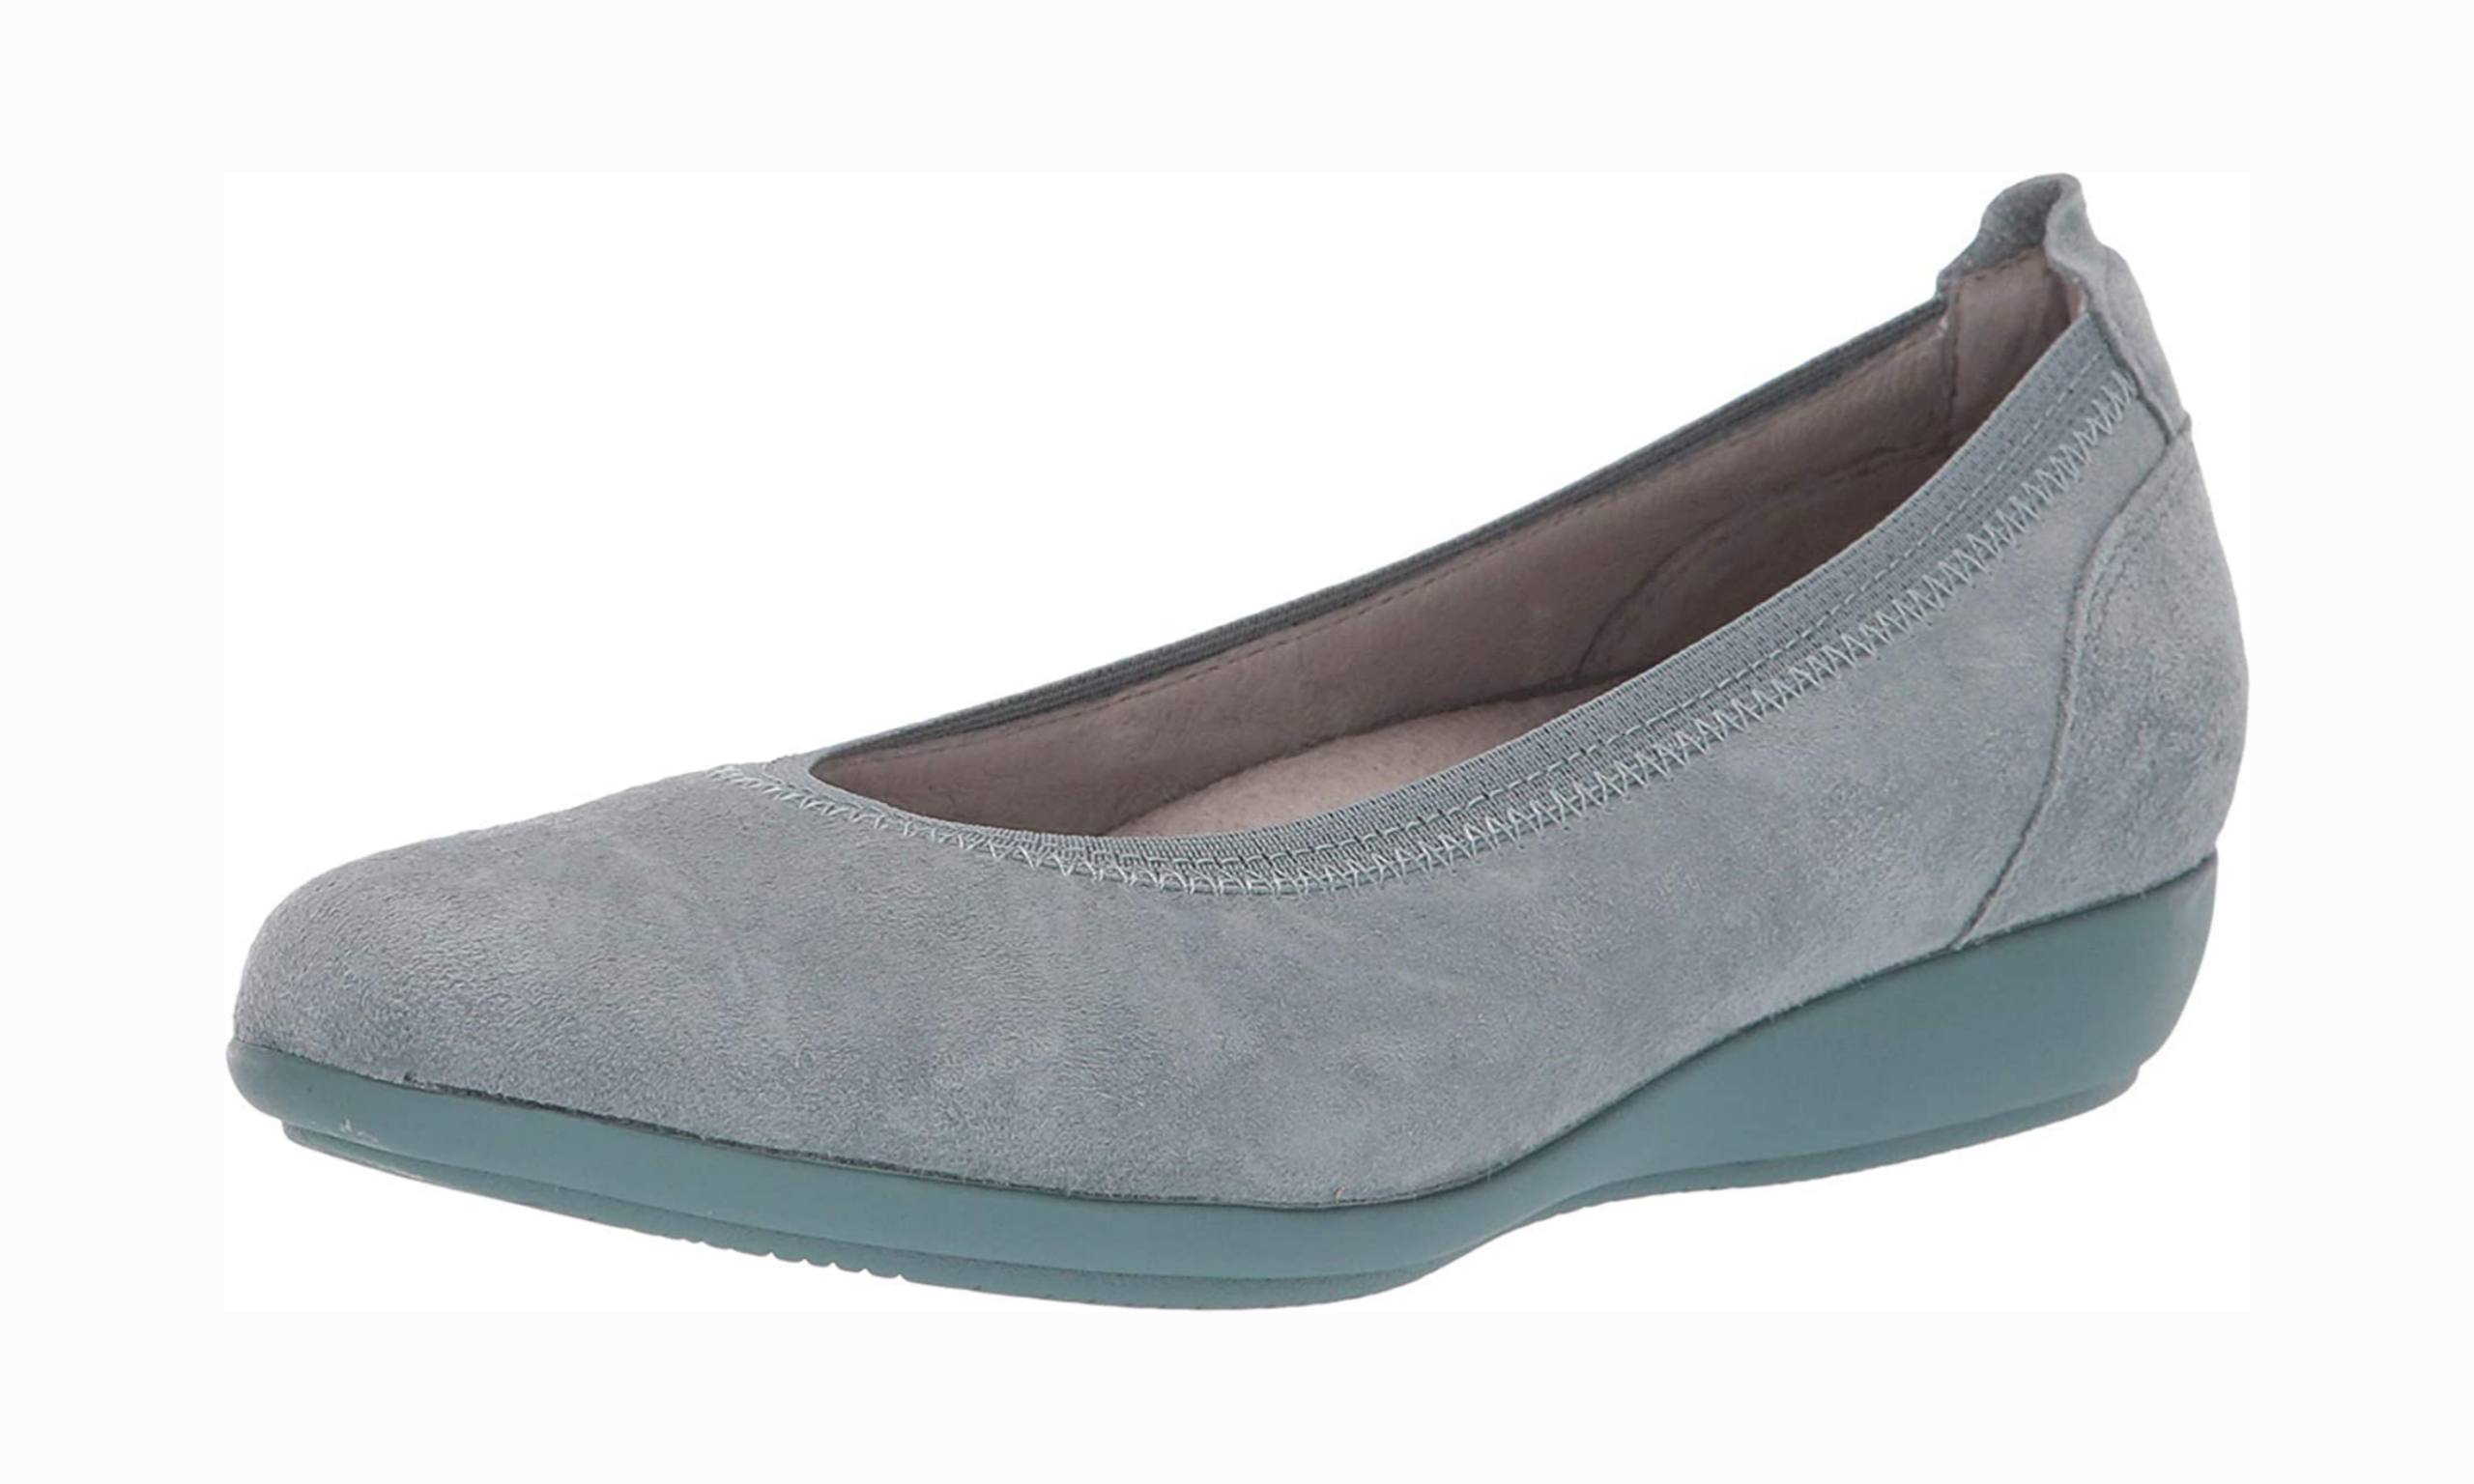 Women's arch support shoe for office